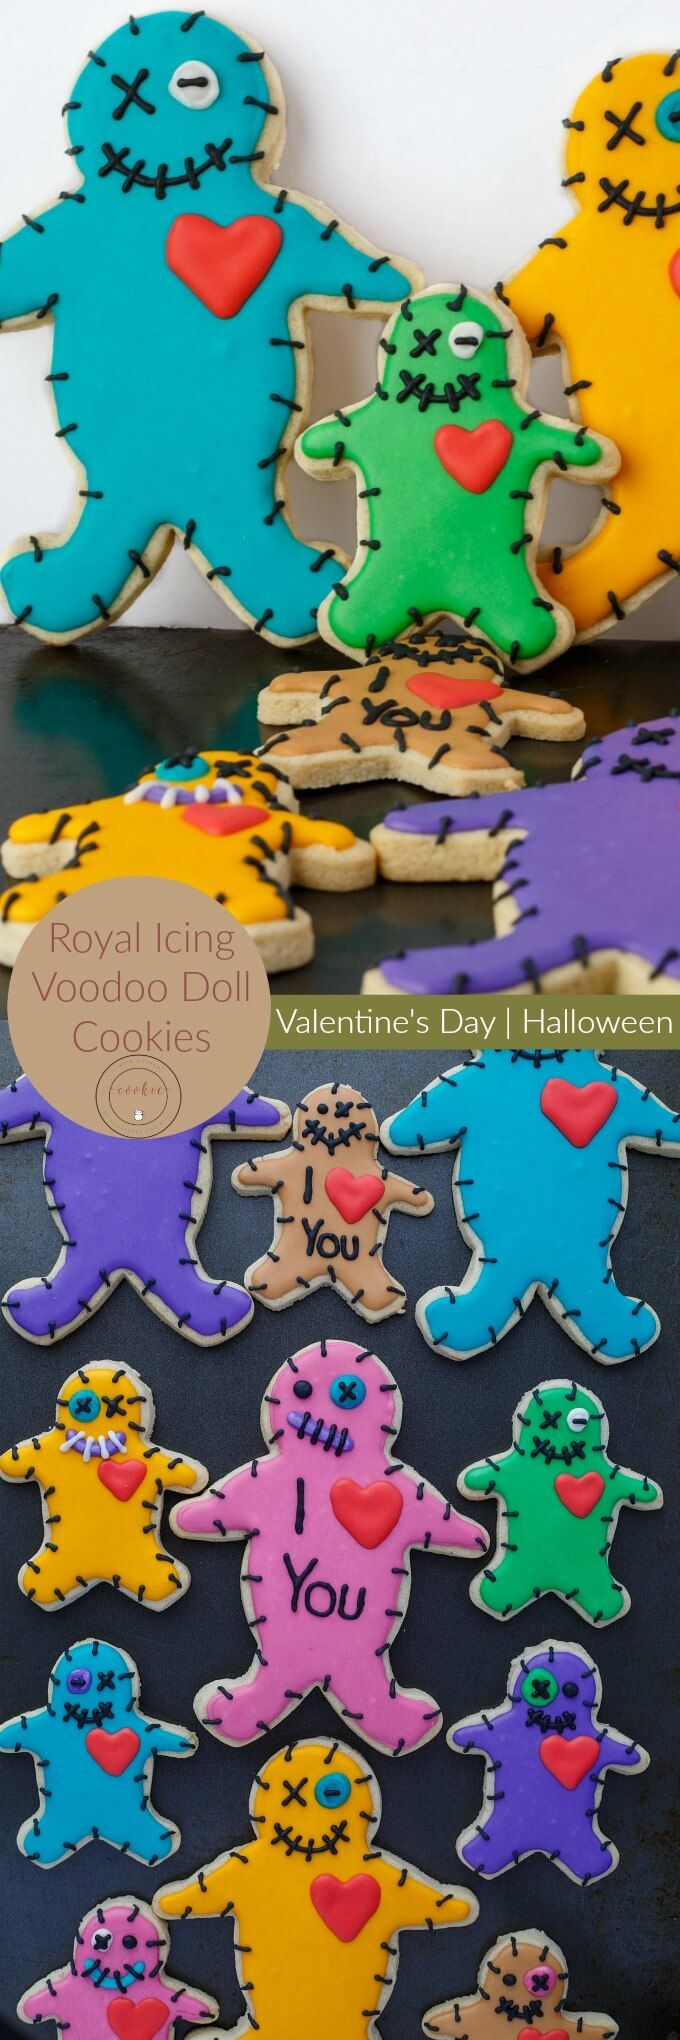 Royal Icing Voodoo Doll Cookies | http://thecookiewriter.com | @thecookiewriter | #cookies | Perfect for Valentine's Day or Halloween, these royal icing voodoo doll cookies are fun and a great project to do with the kids!